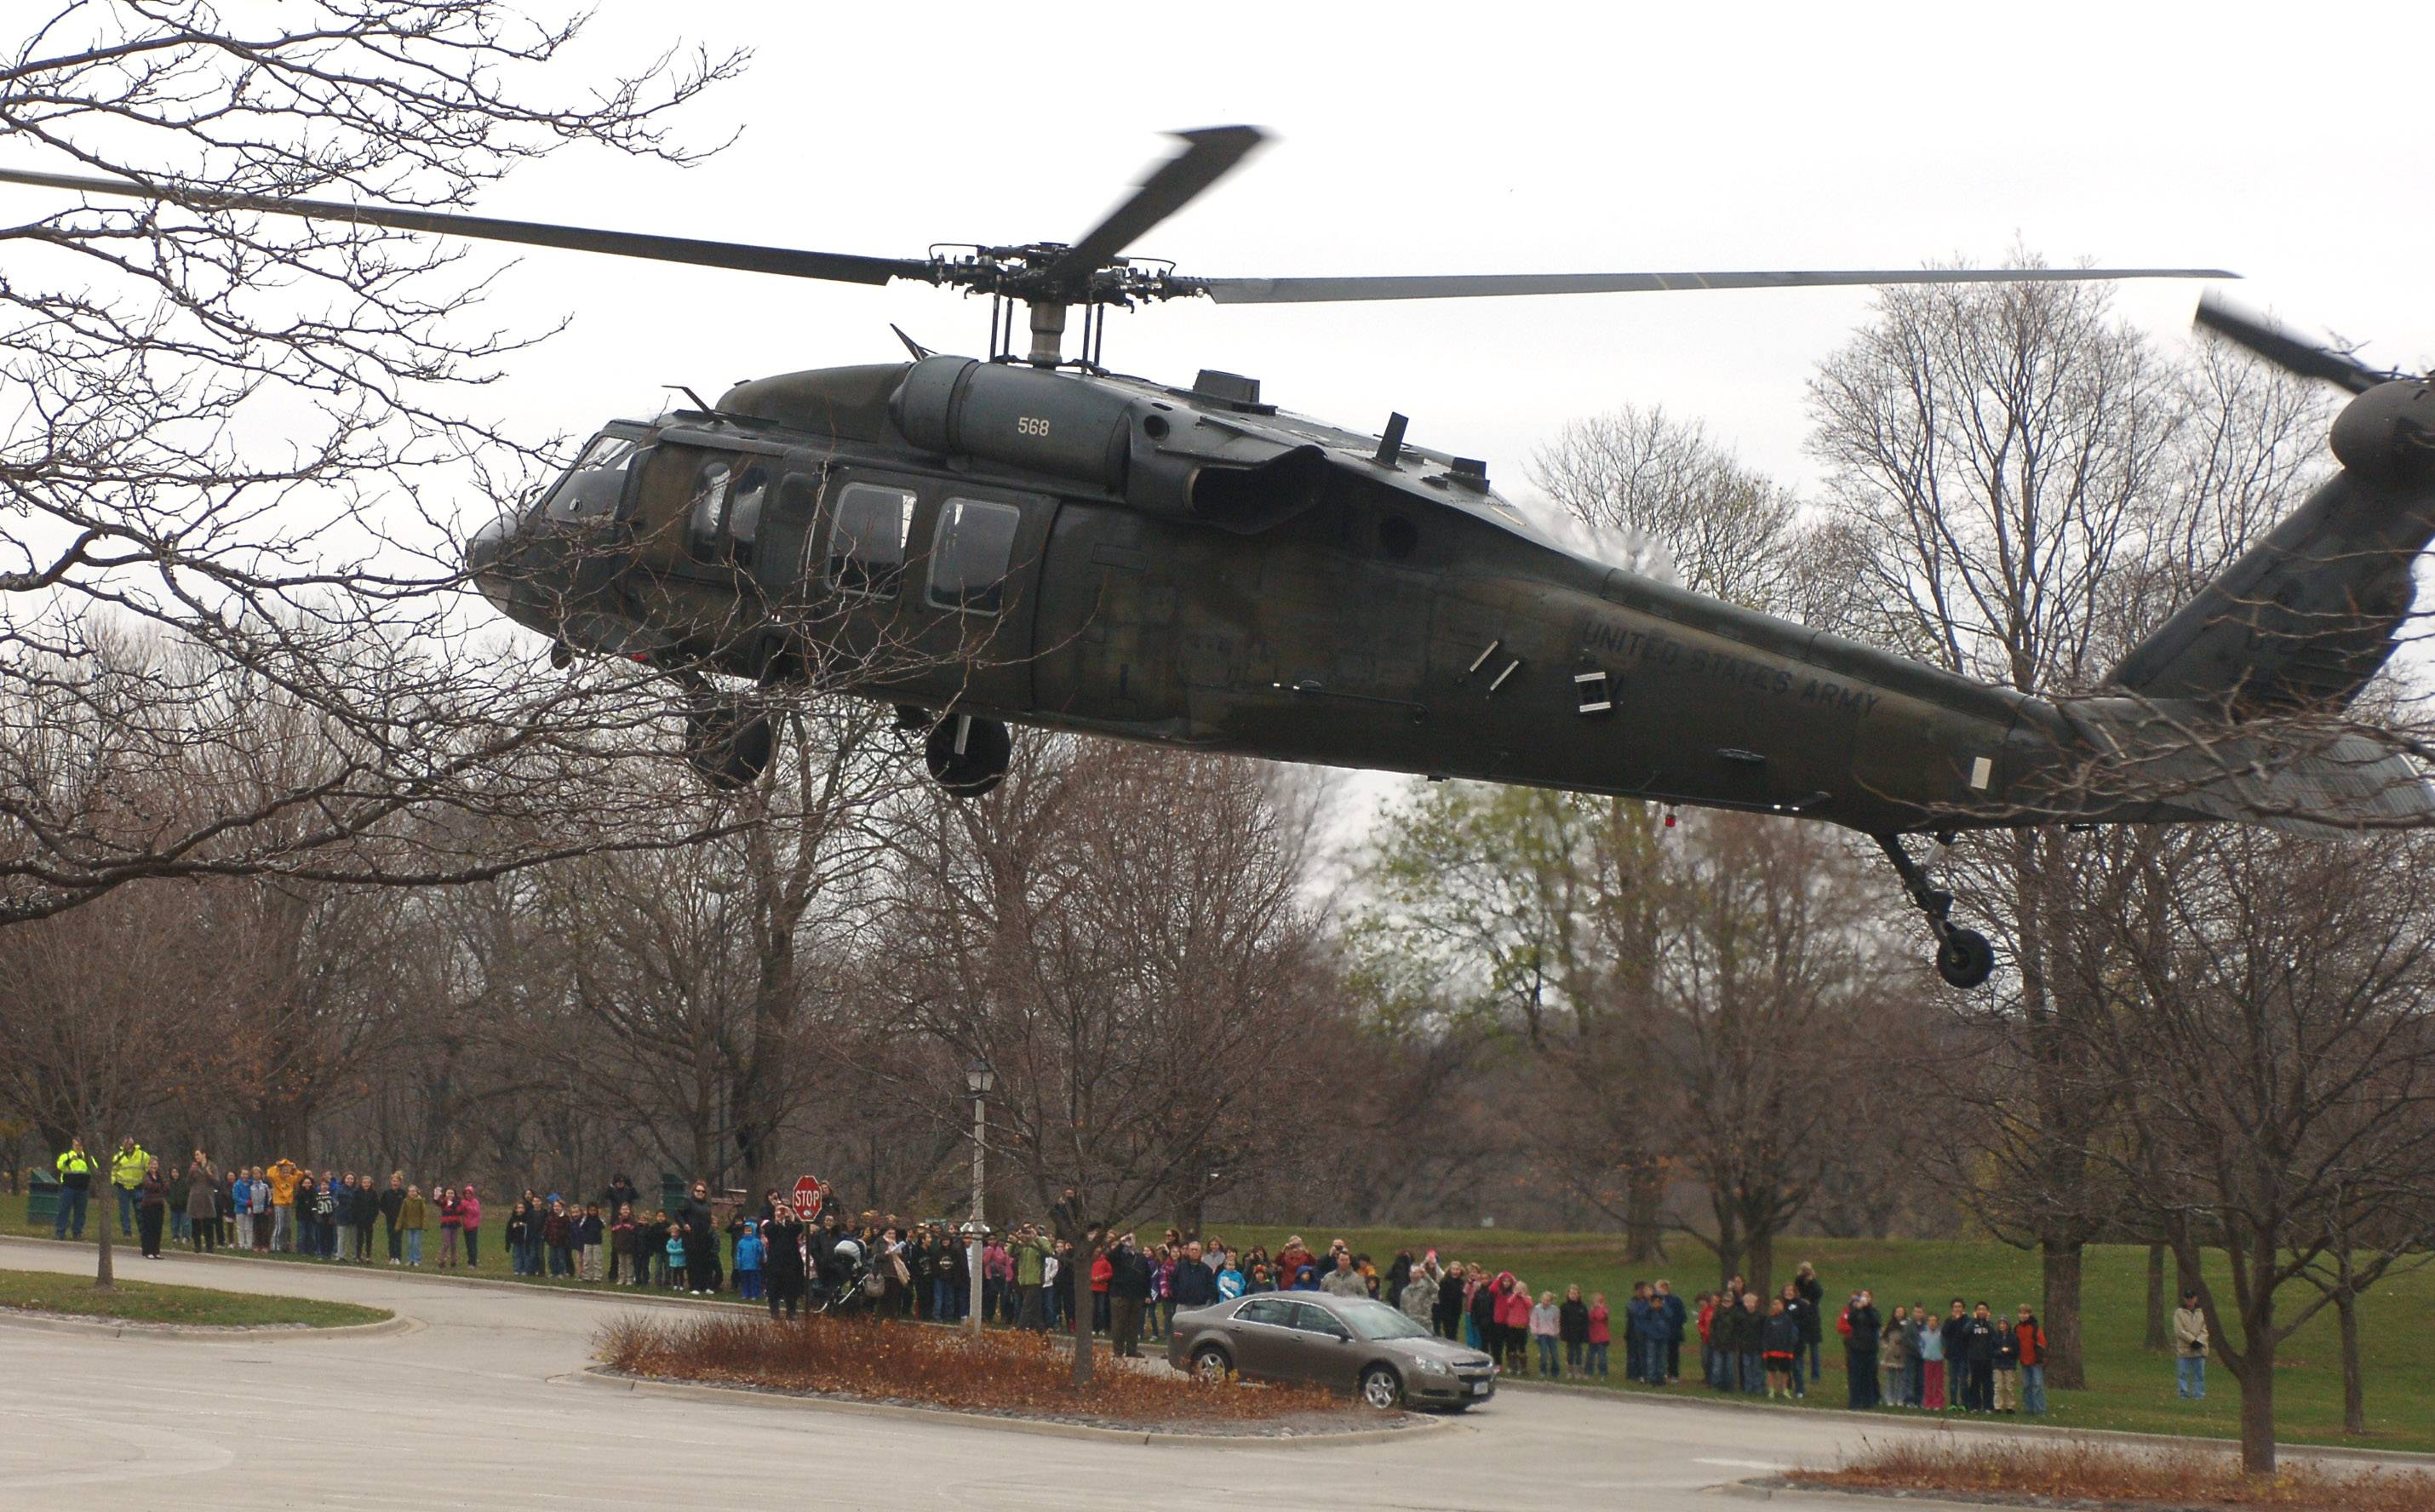 Adler Park School students watch as a United States Army National Guard Blackhawk helicopter lands in Libertyville as part of a Veterans Day event at the school.